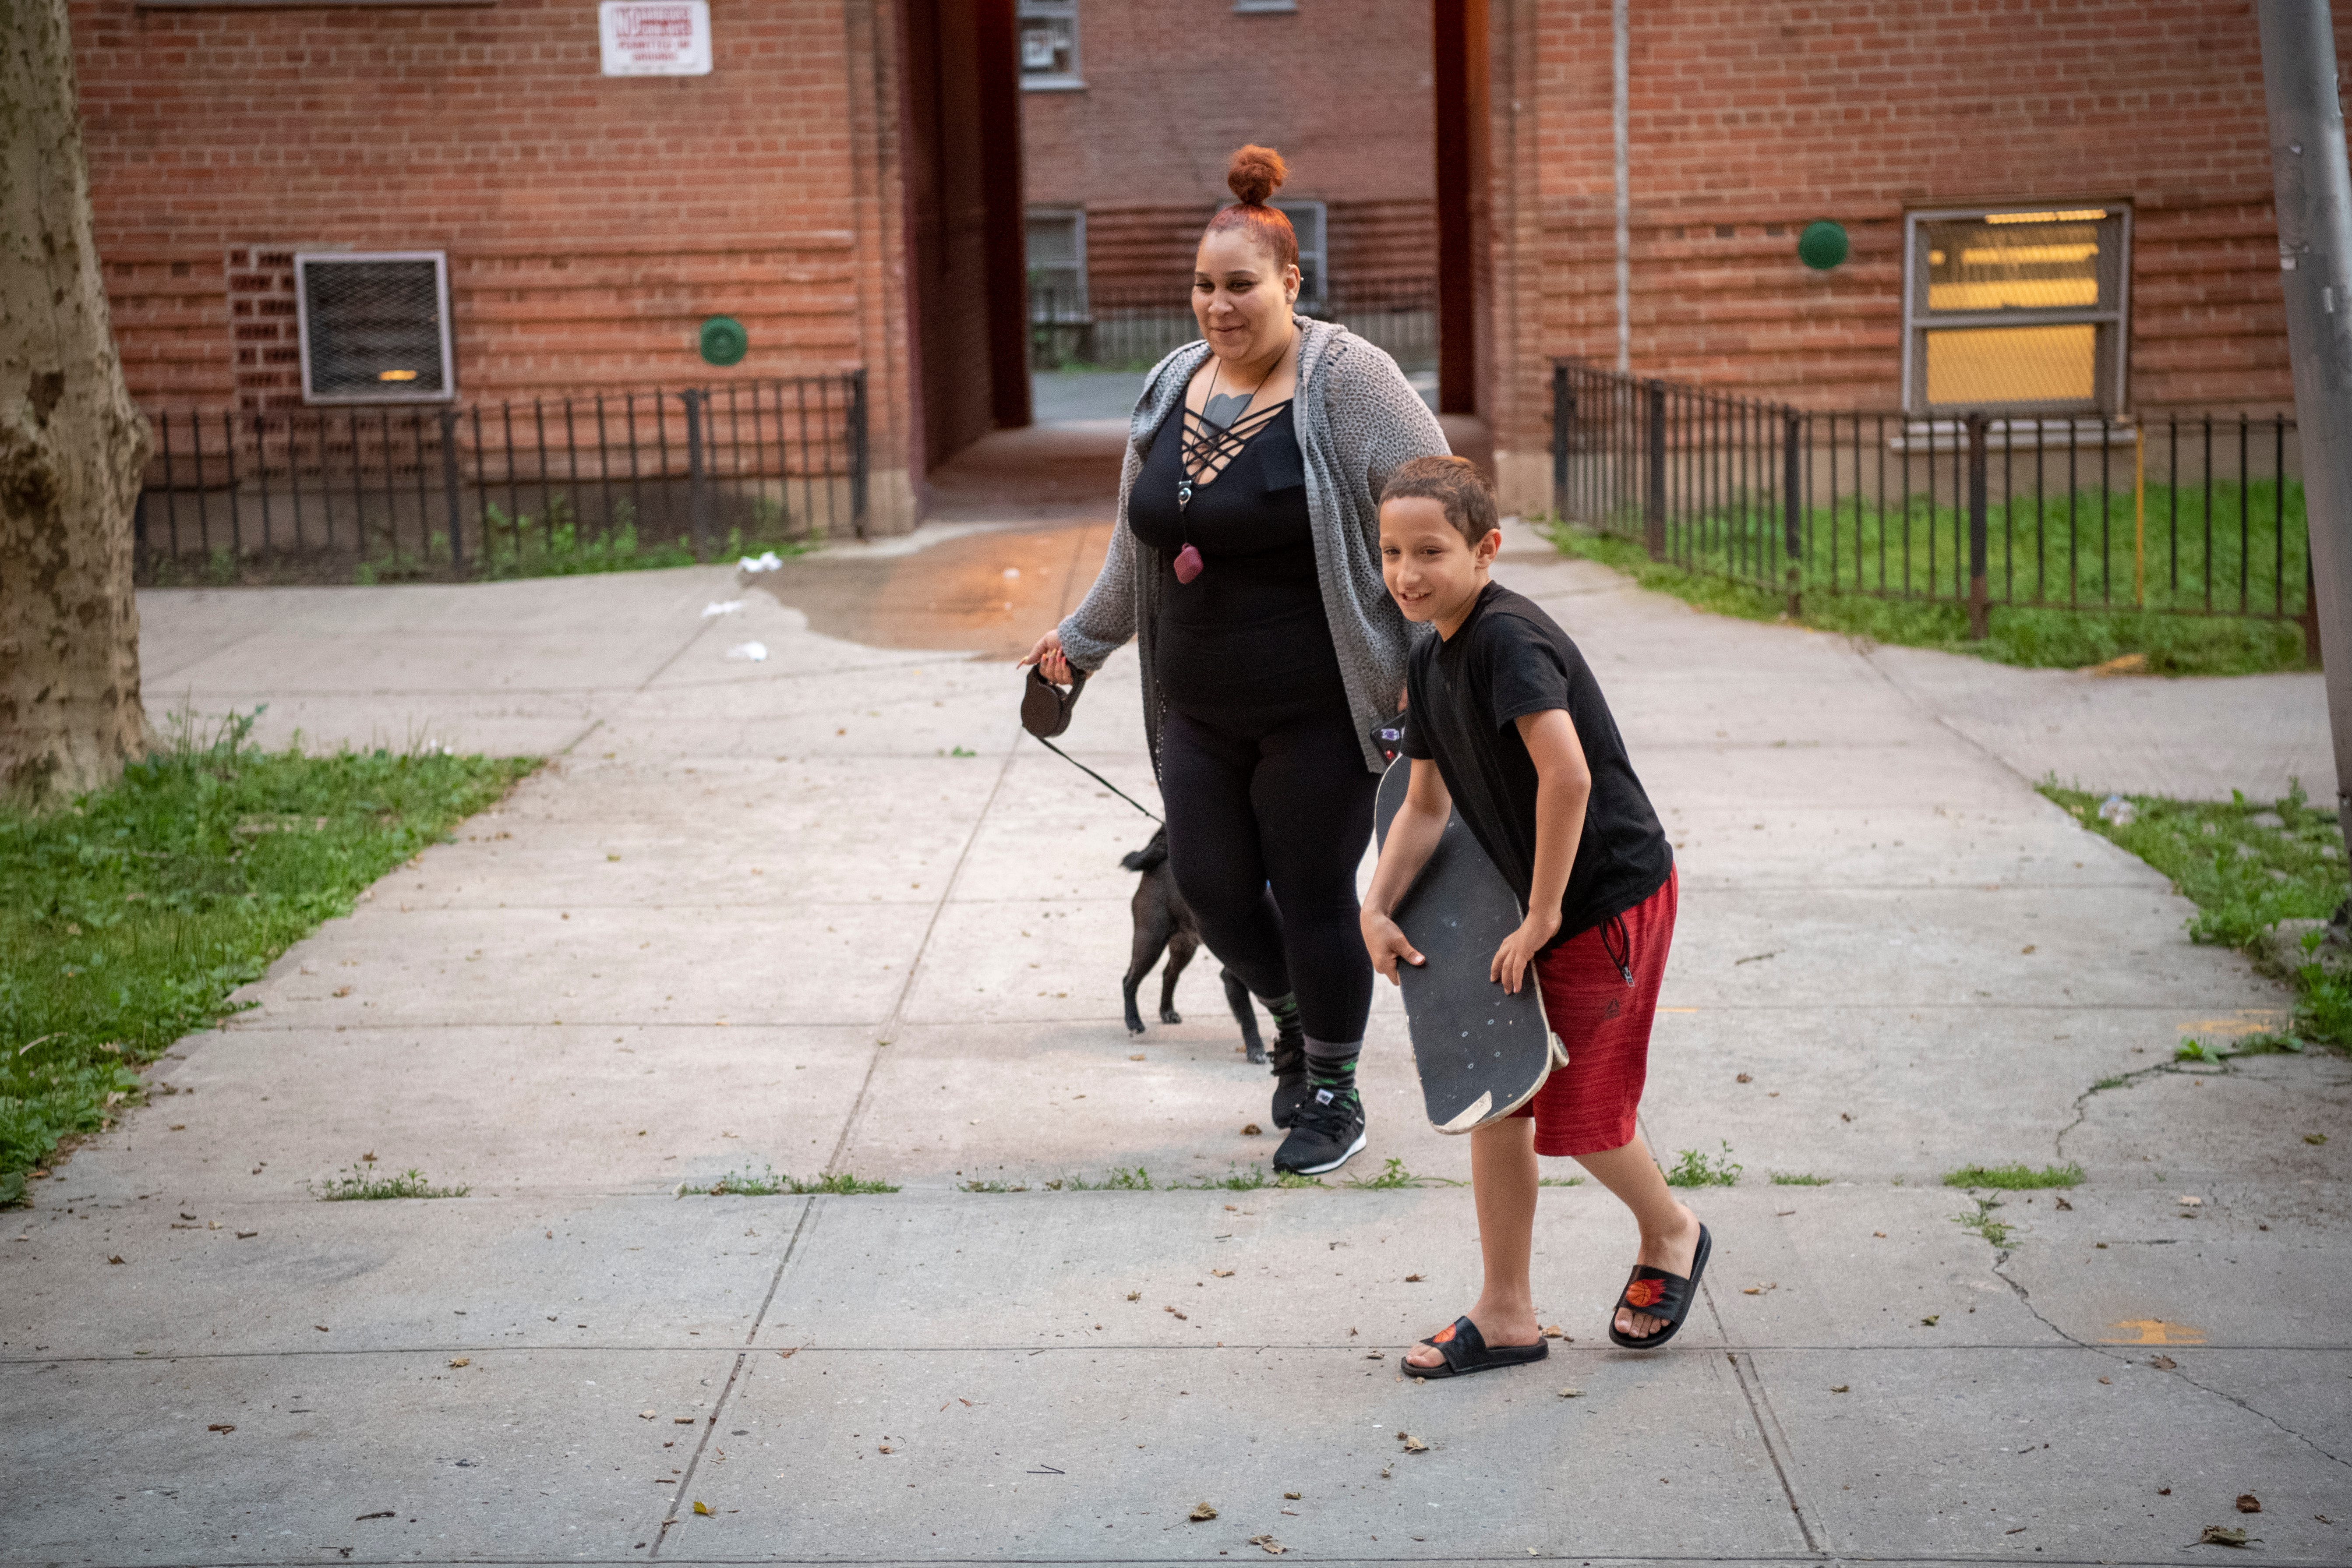 Landon Rodriguez plays with his skateboard while his mother, Yolanda, walks their dog, Buddy.